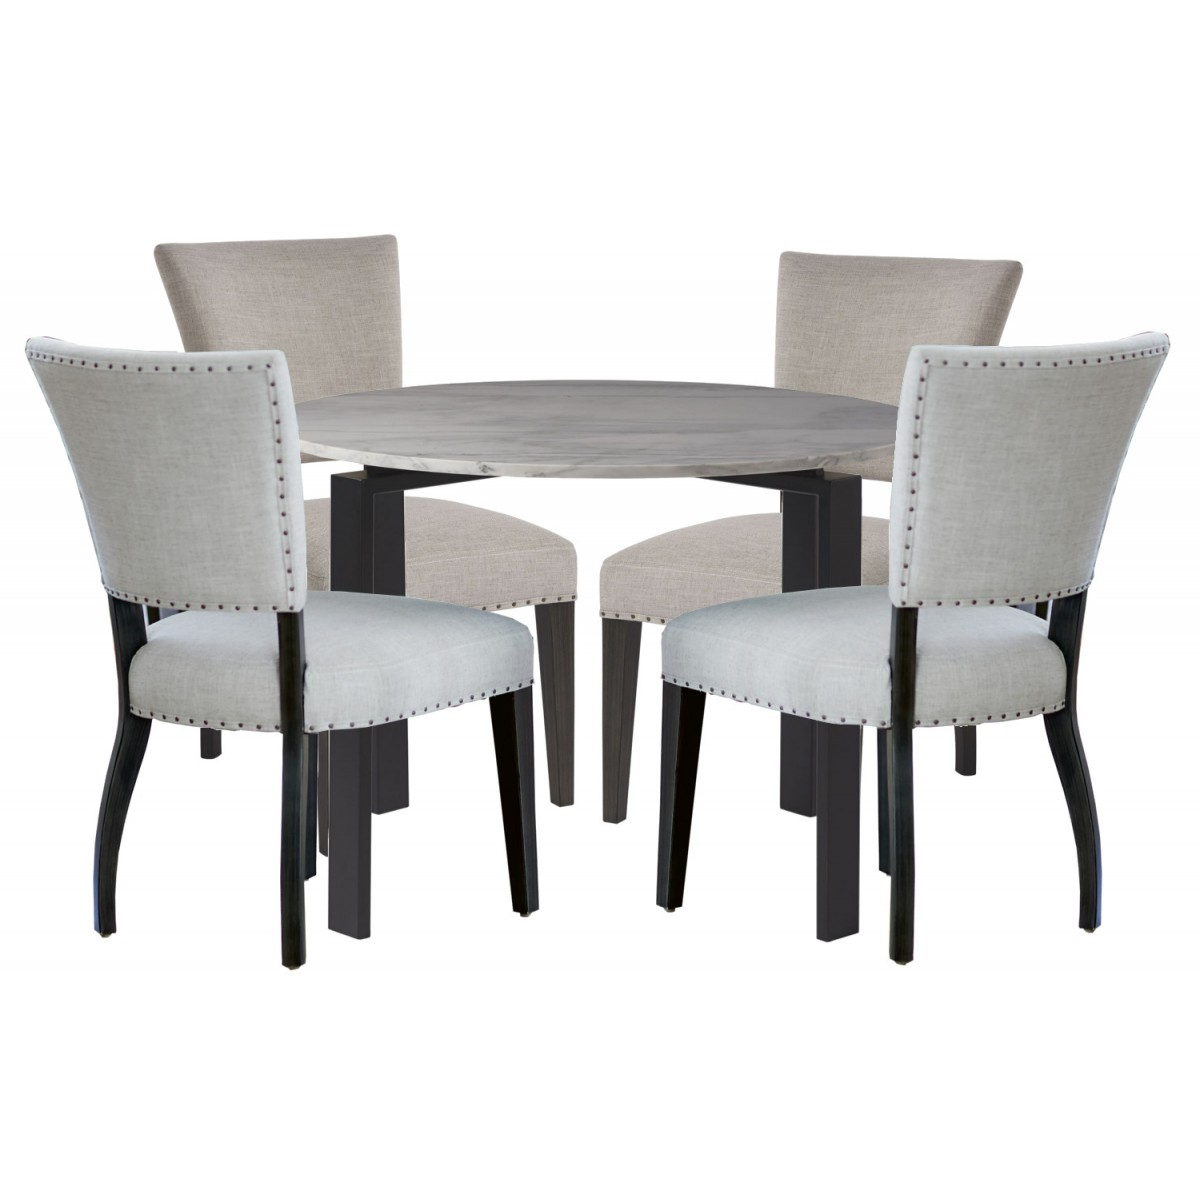 Most Popular Universal Furniture Spaces Marshall 5pc Round Dining Table Set White Marble Top#732 Intended For Dining Tables With White Marble Top (View 21 of 30)